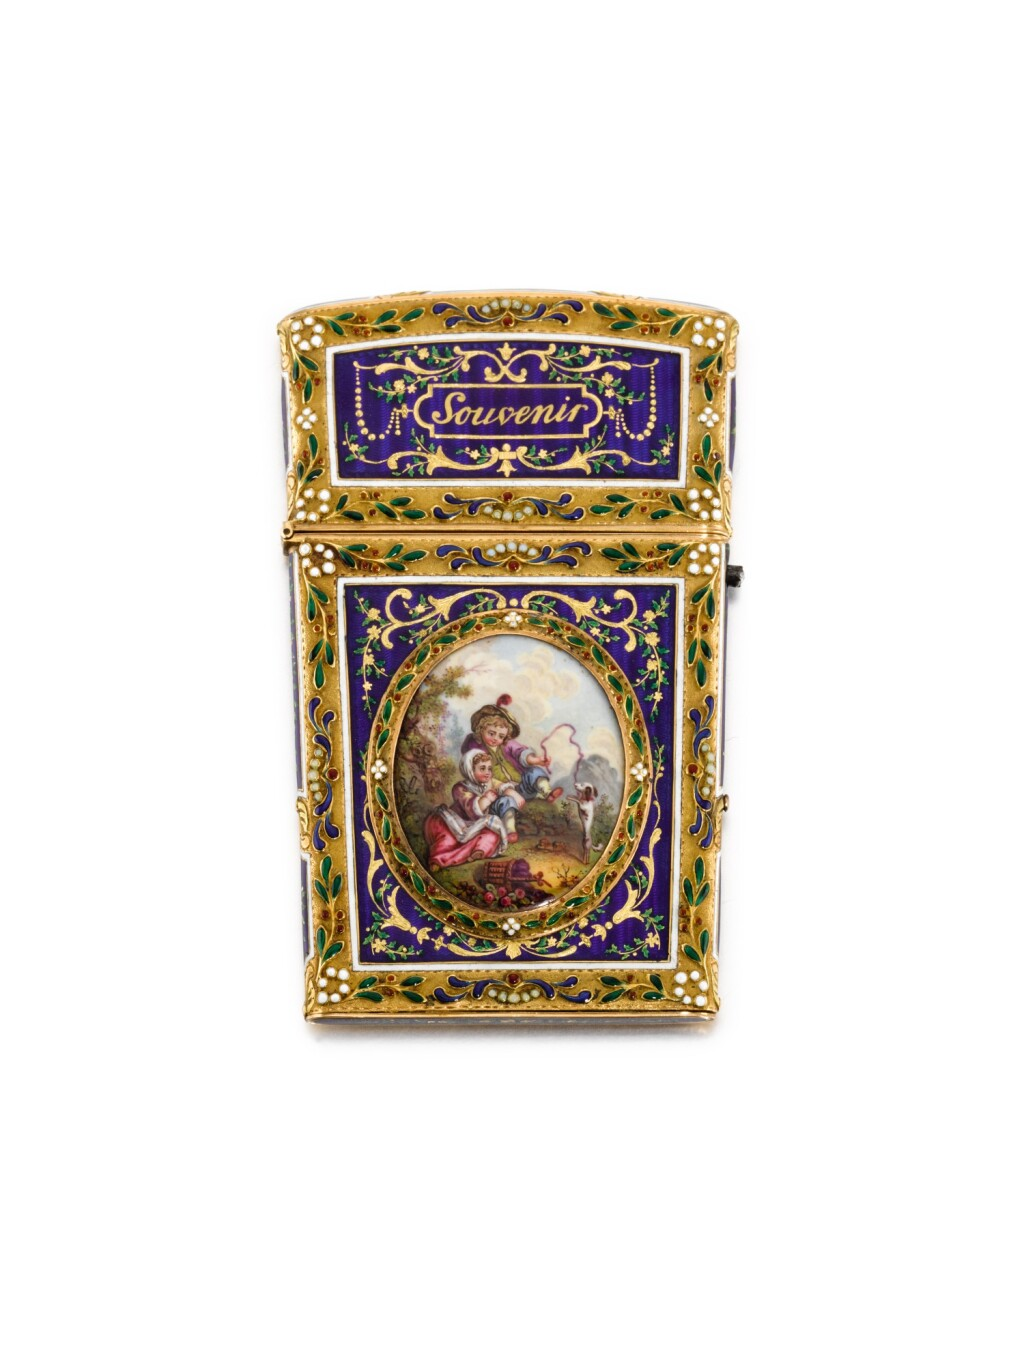 A GOLD AND ENAMEL SOUVENIR, PROBABLY FRENCH, LATE 19TH CENTURY